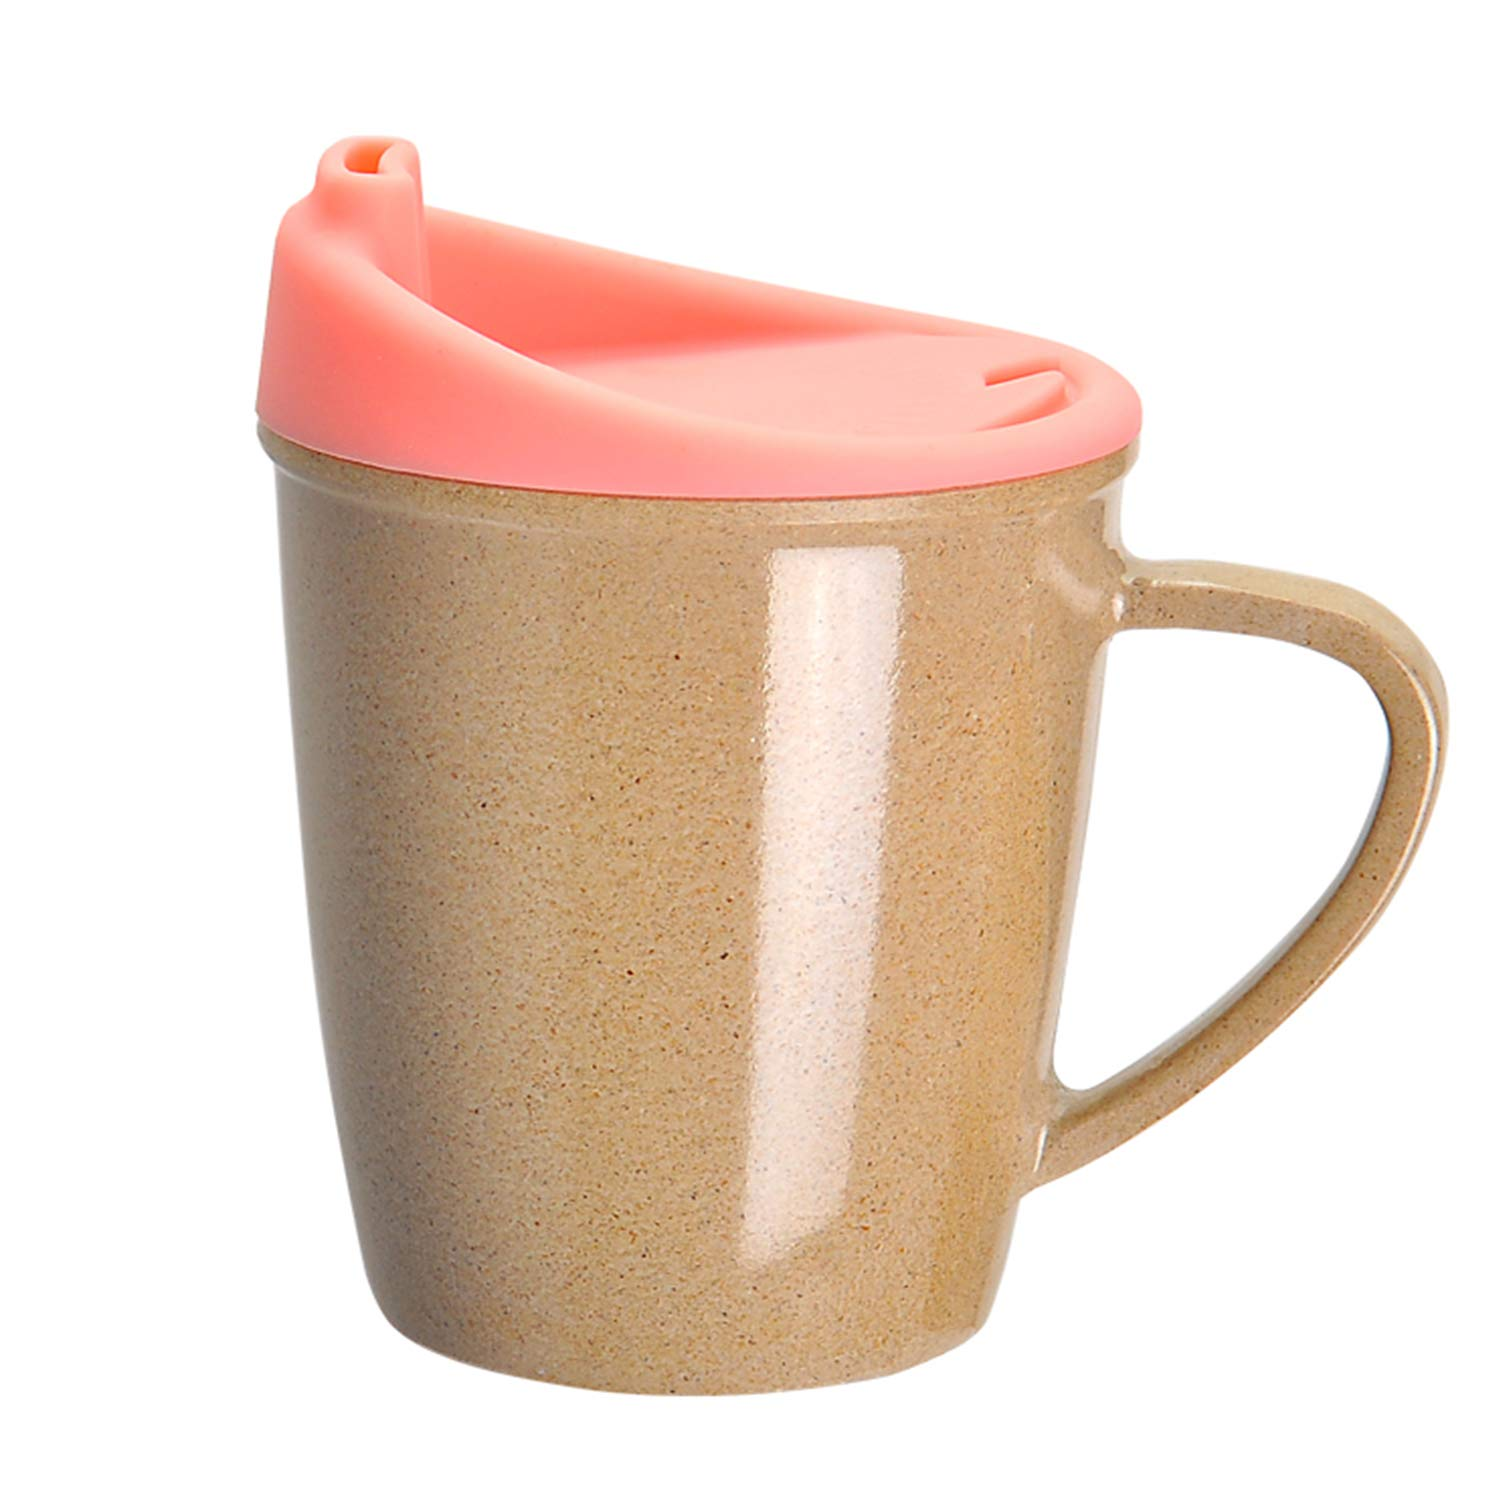 Wuz Kids Learning Cup, Rice Husk Spill Proof Kids Mug 9 oz with Handle and Anti-Leak Locking Lid, Toddler Cups for Milk Water Juice (Pink)